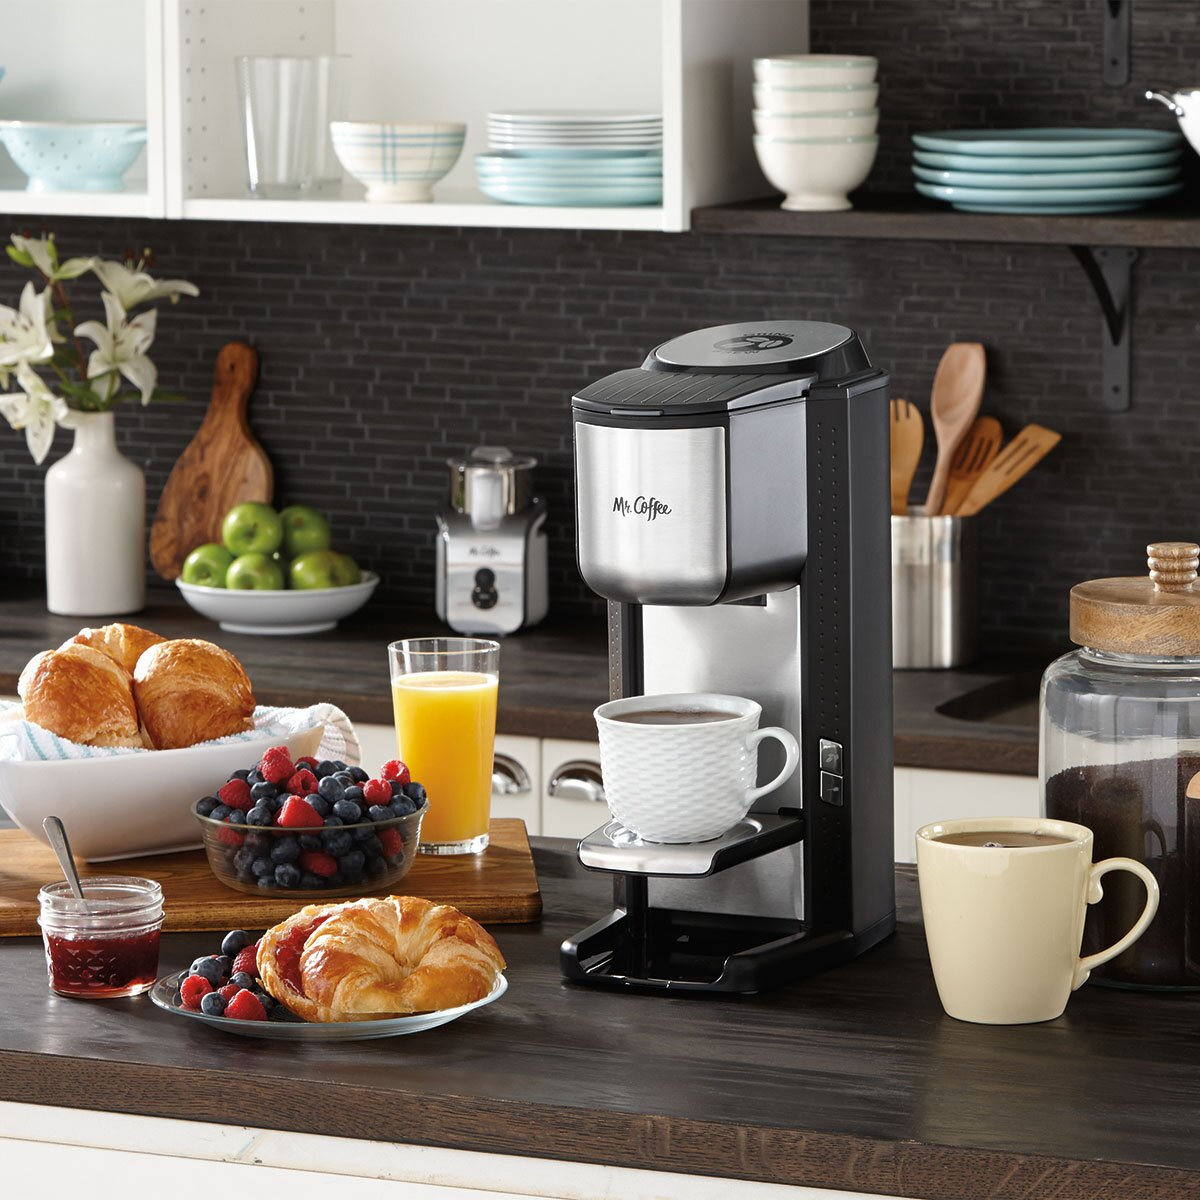 Mr. Coffee Single Cup Coffeemaker with Built-in Grinder, with Travel Mug Included BVMC-SCGB200 6